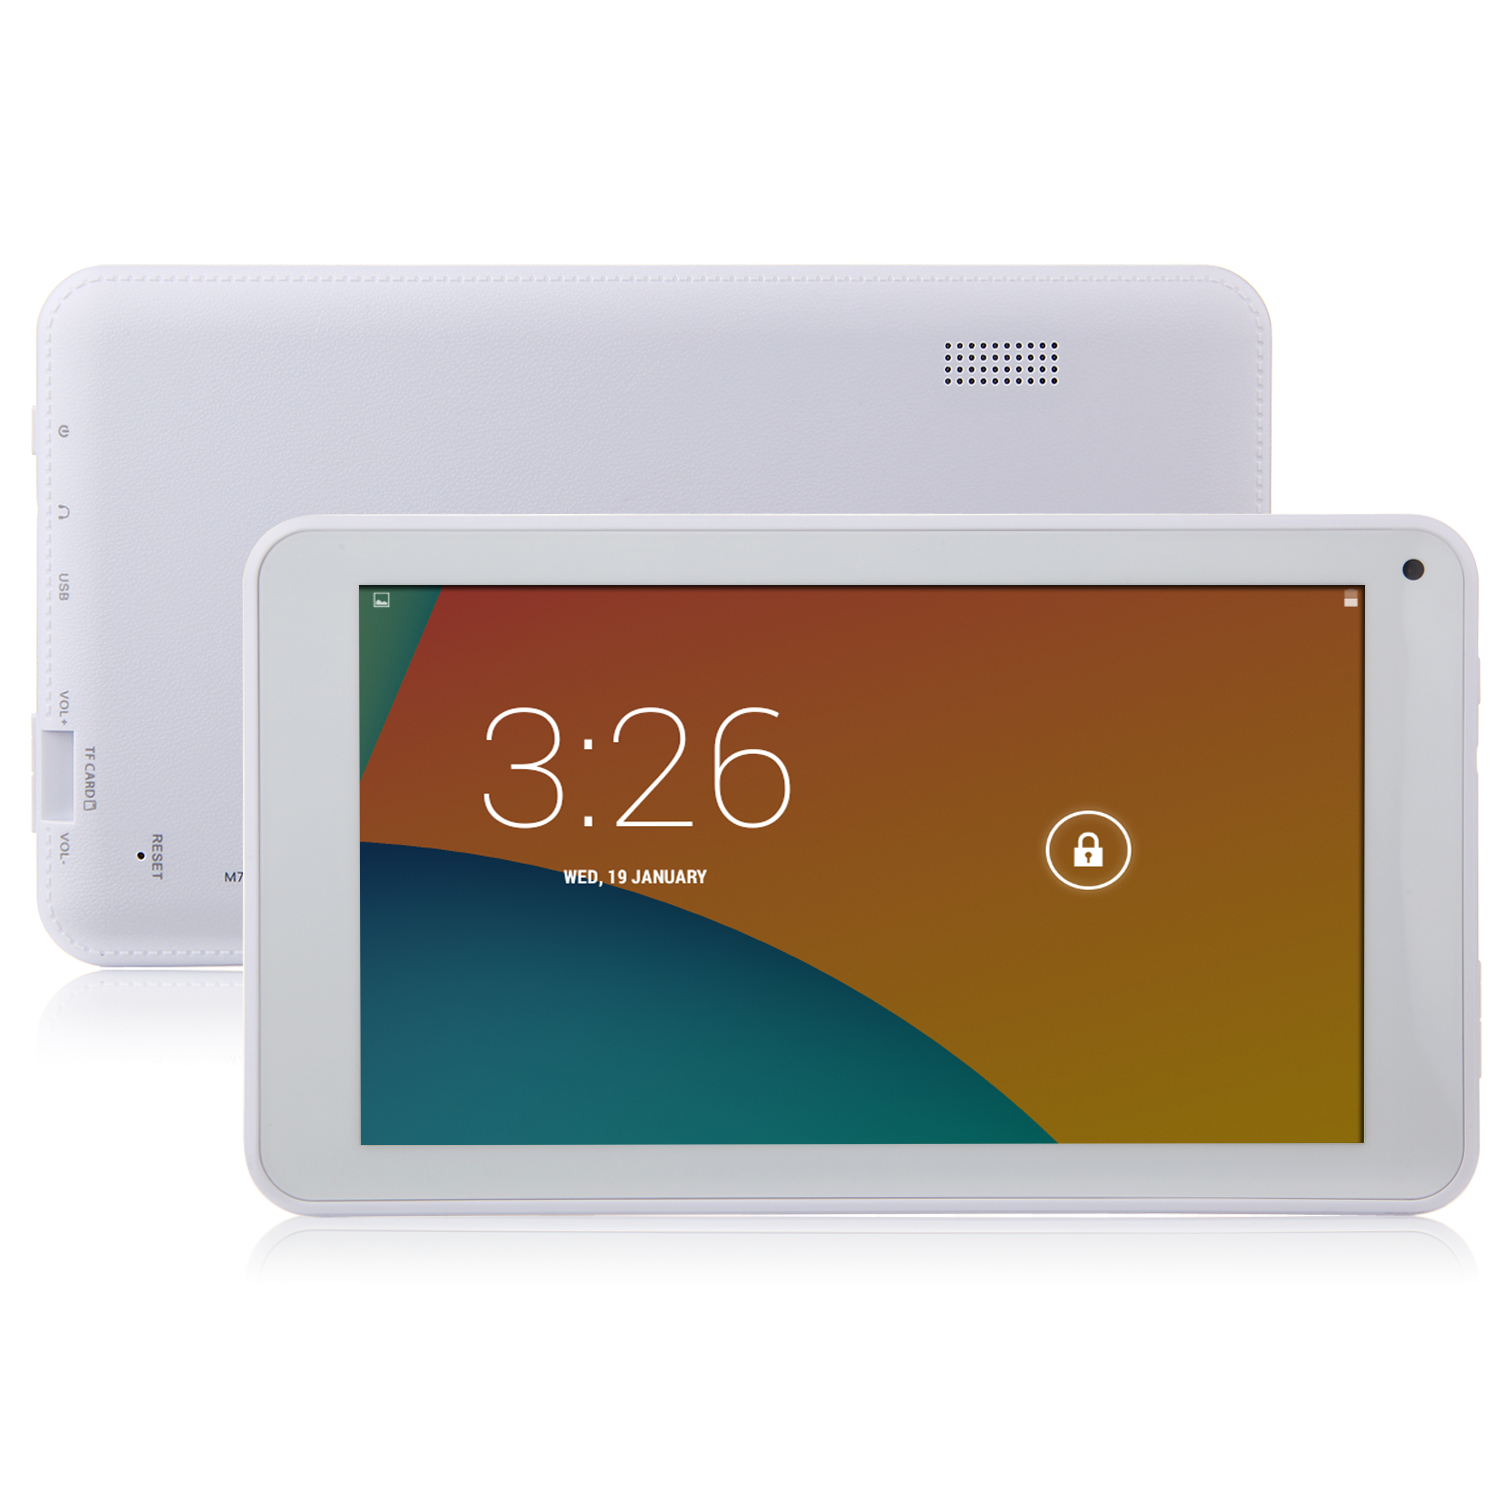 IC00 D70M5 Tablet PC MTK3126 Quad Core 7.0 Inch Android 4.4 8GB White